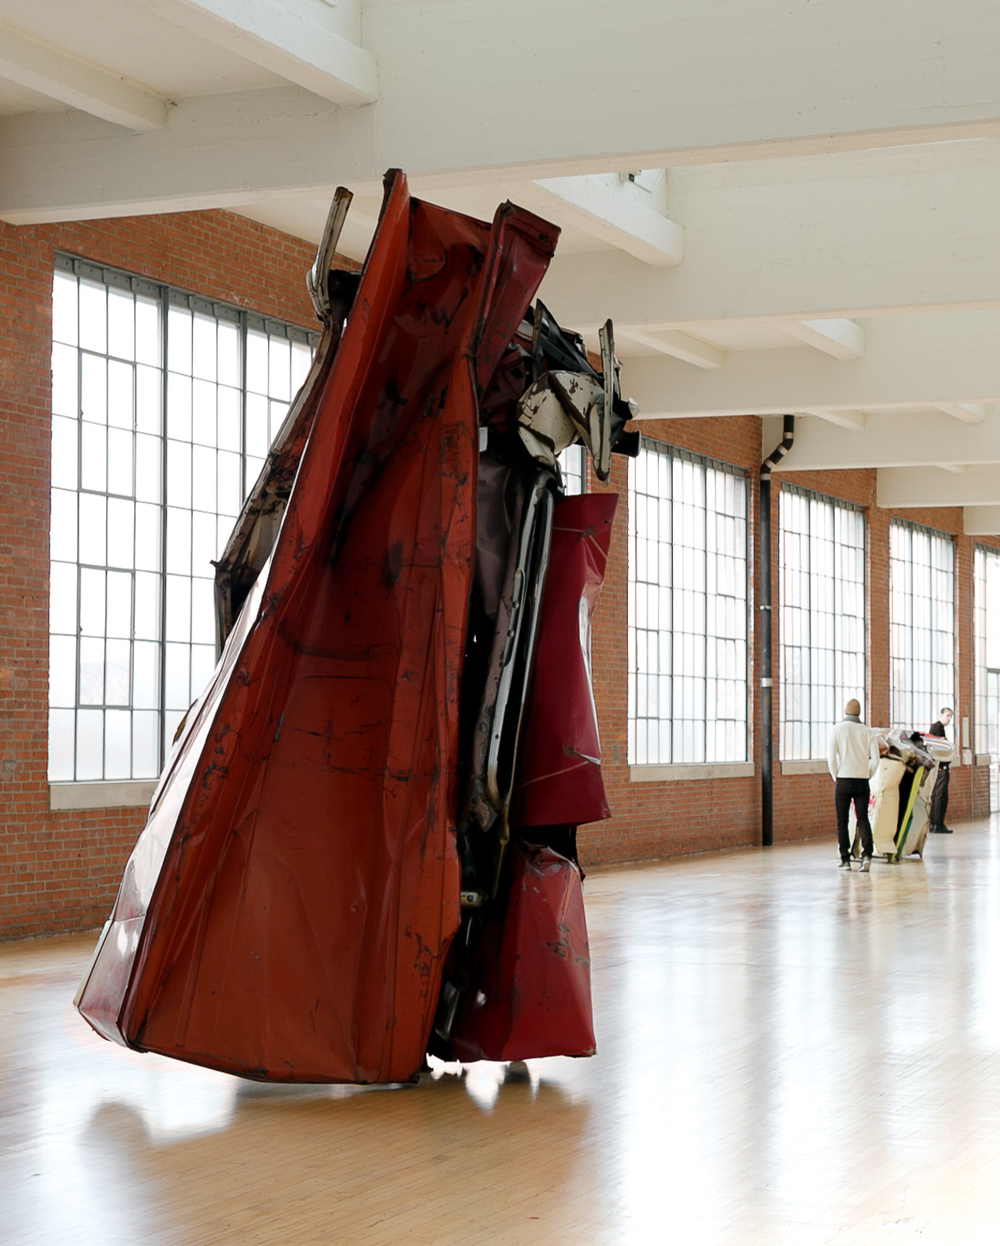 John Chamberlain at DIA Beacon